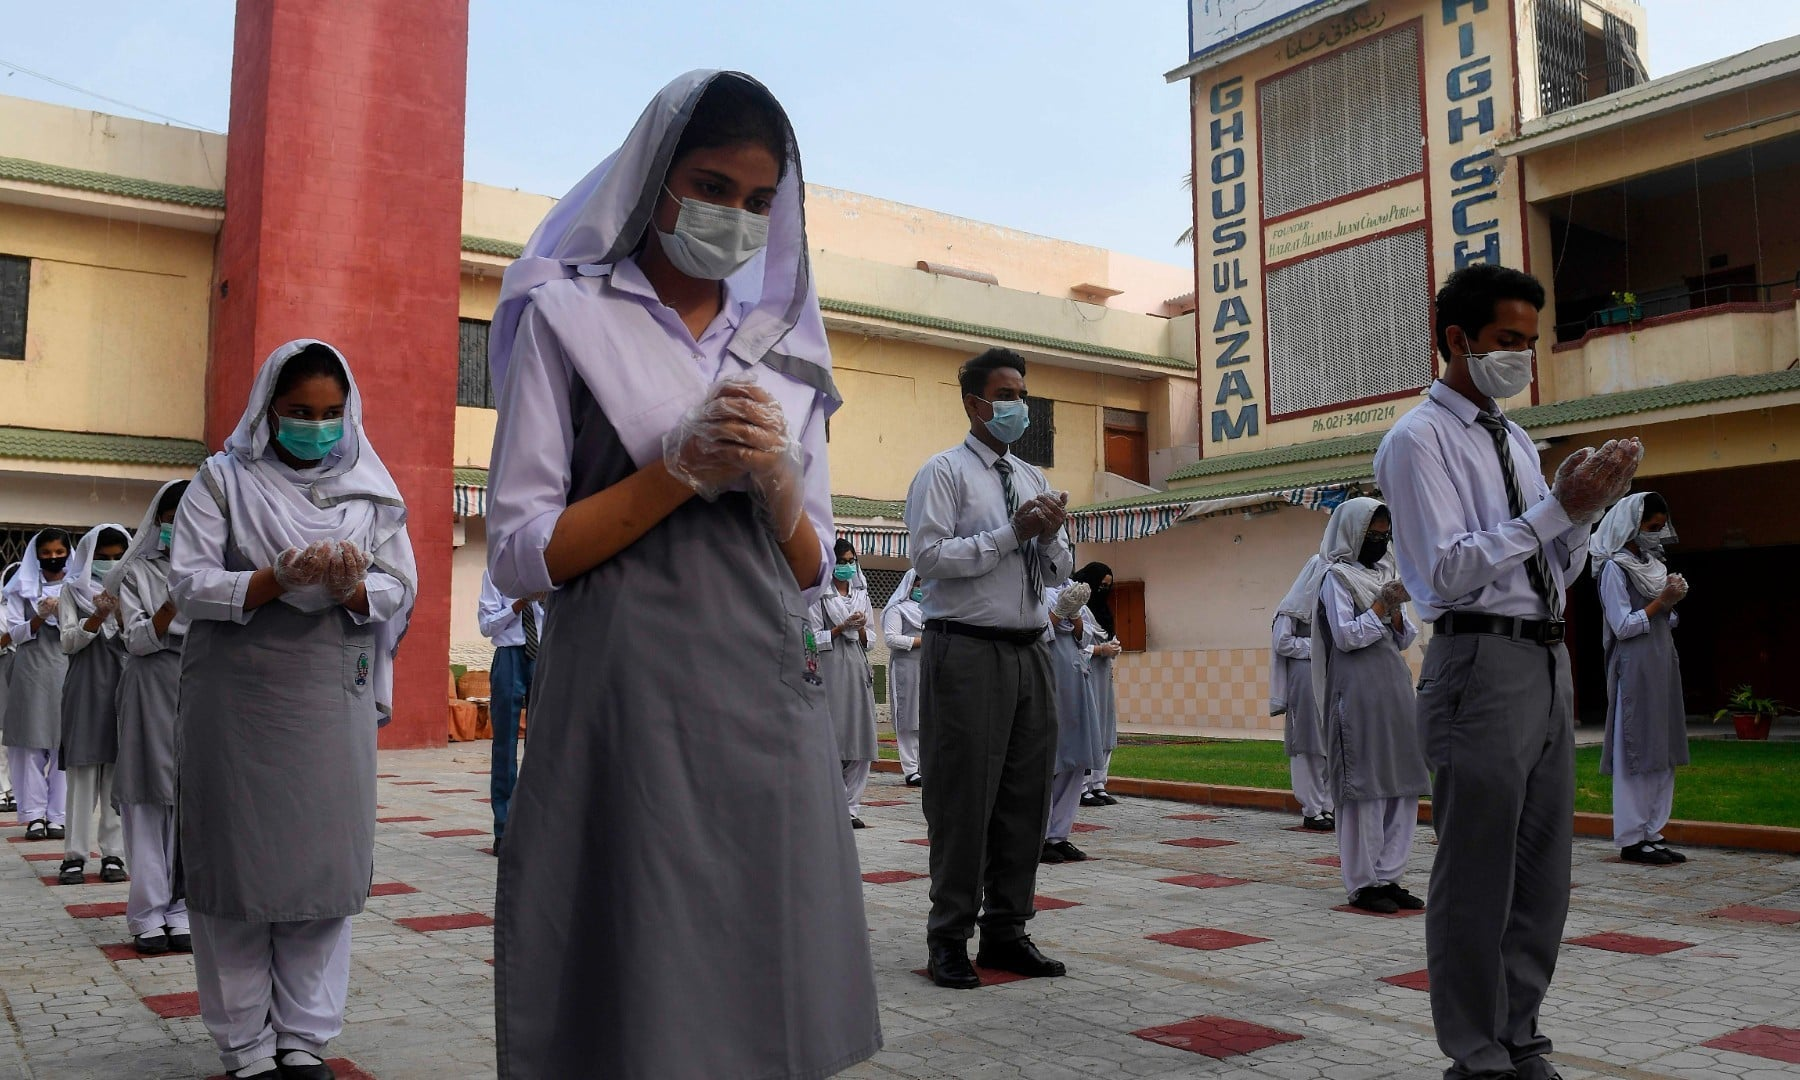 Students wearing face masks and gloves take part in an assembly at a school in Karachi on September 15. — AFP/File